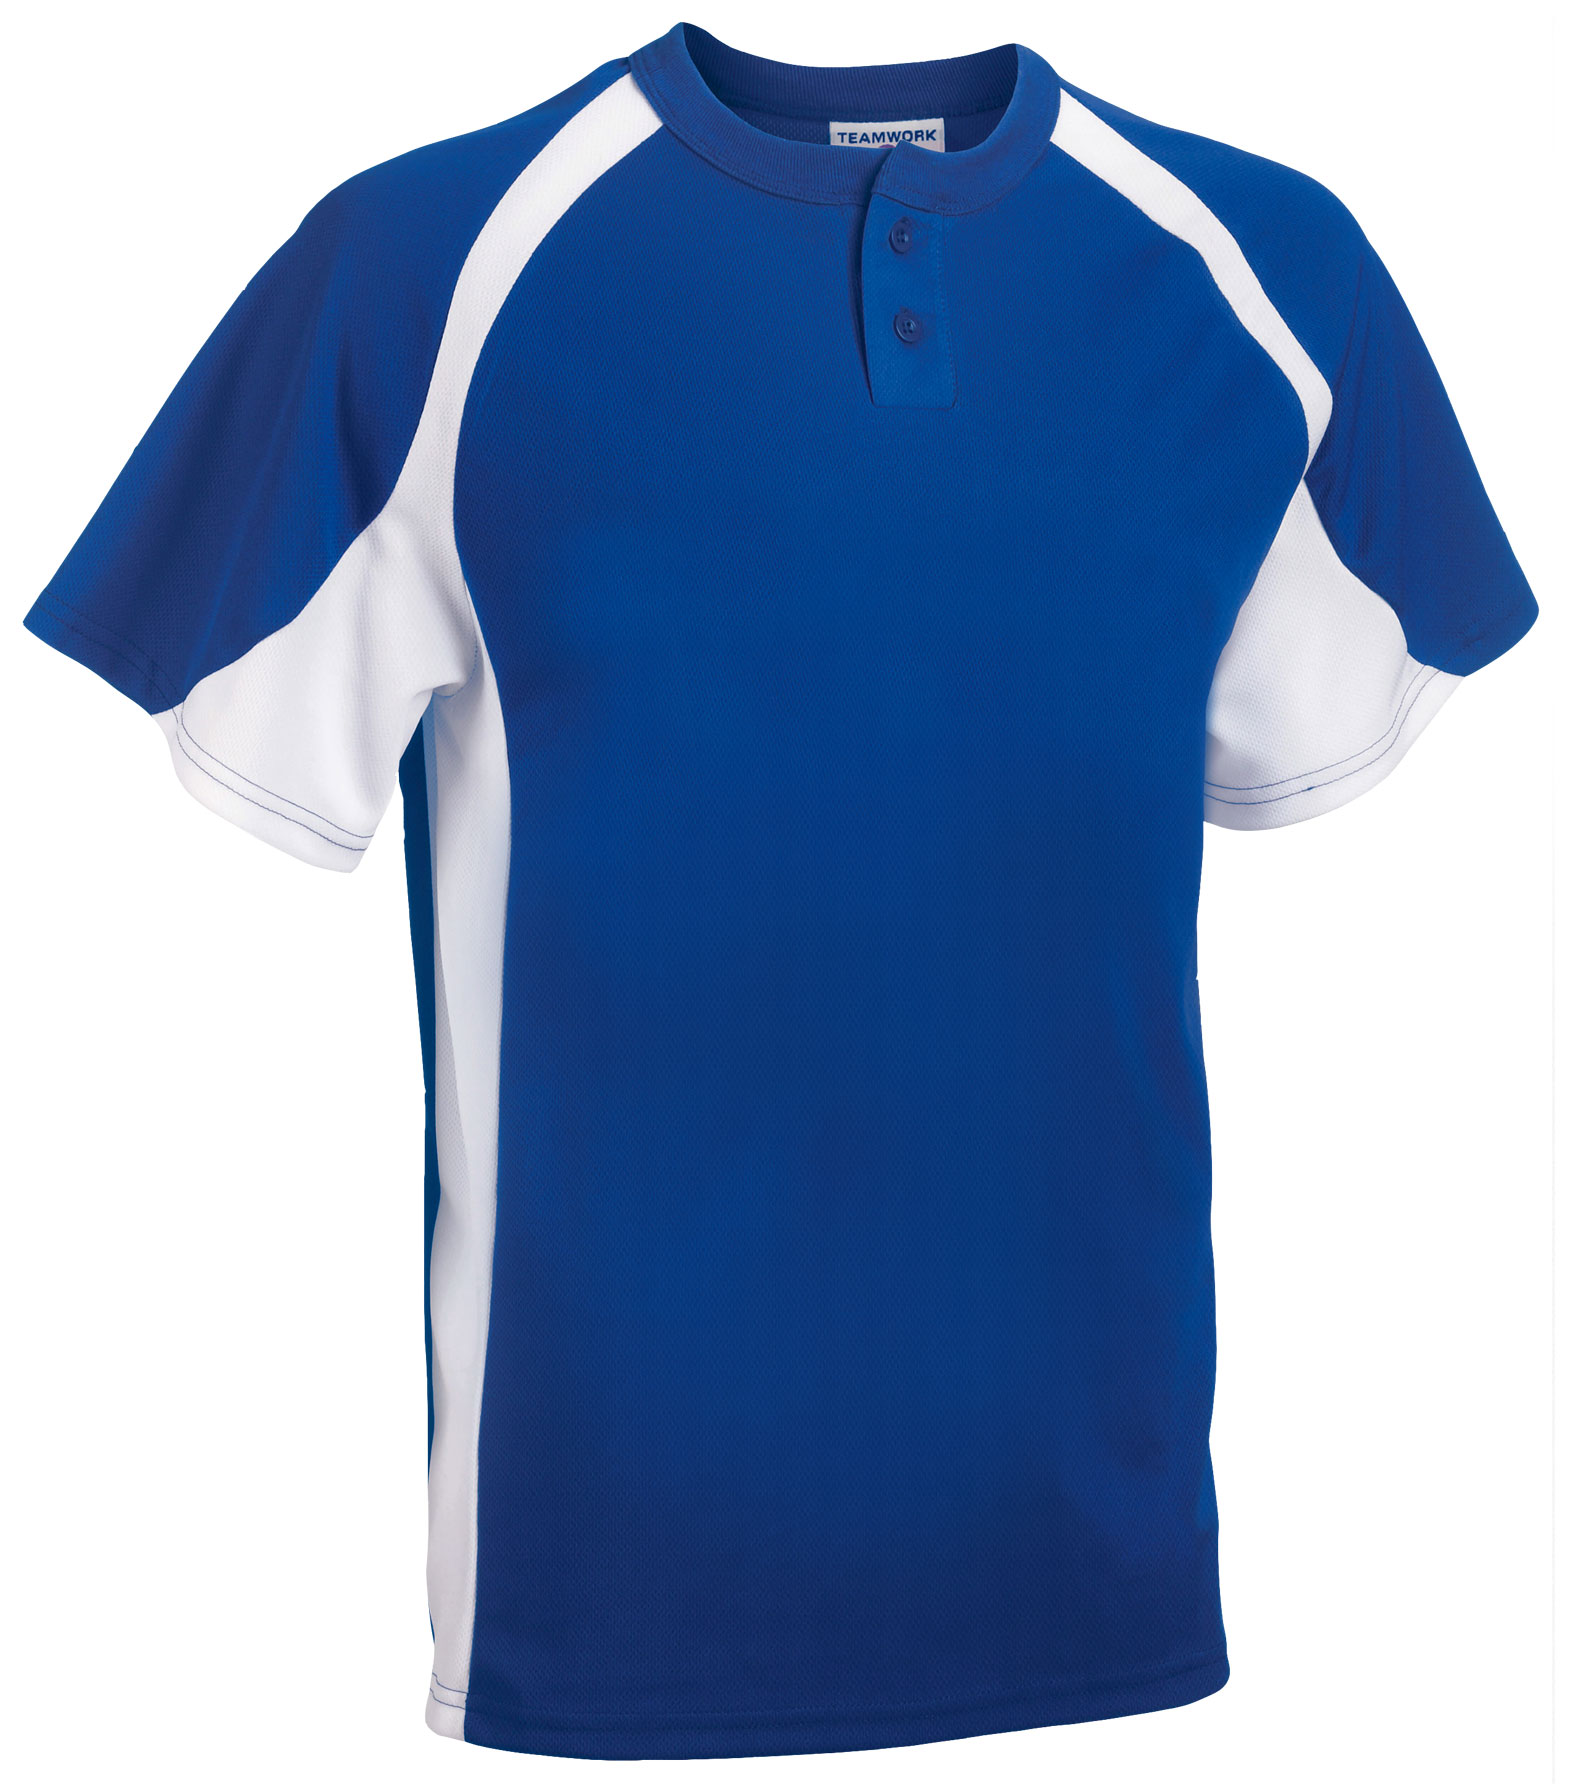 Teamwork Youth Line Drive 2-Button Jersey - CLOSEOUT